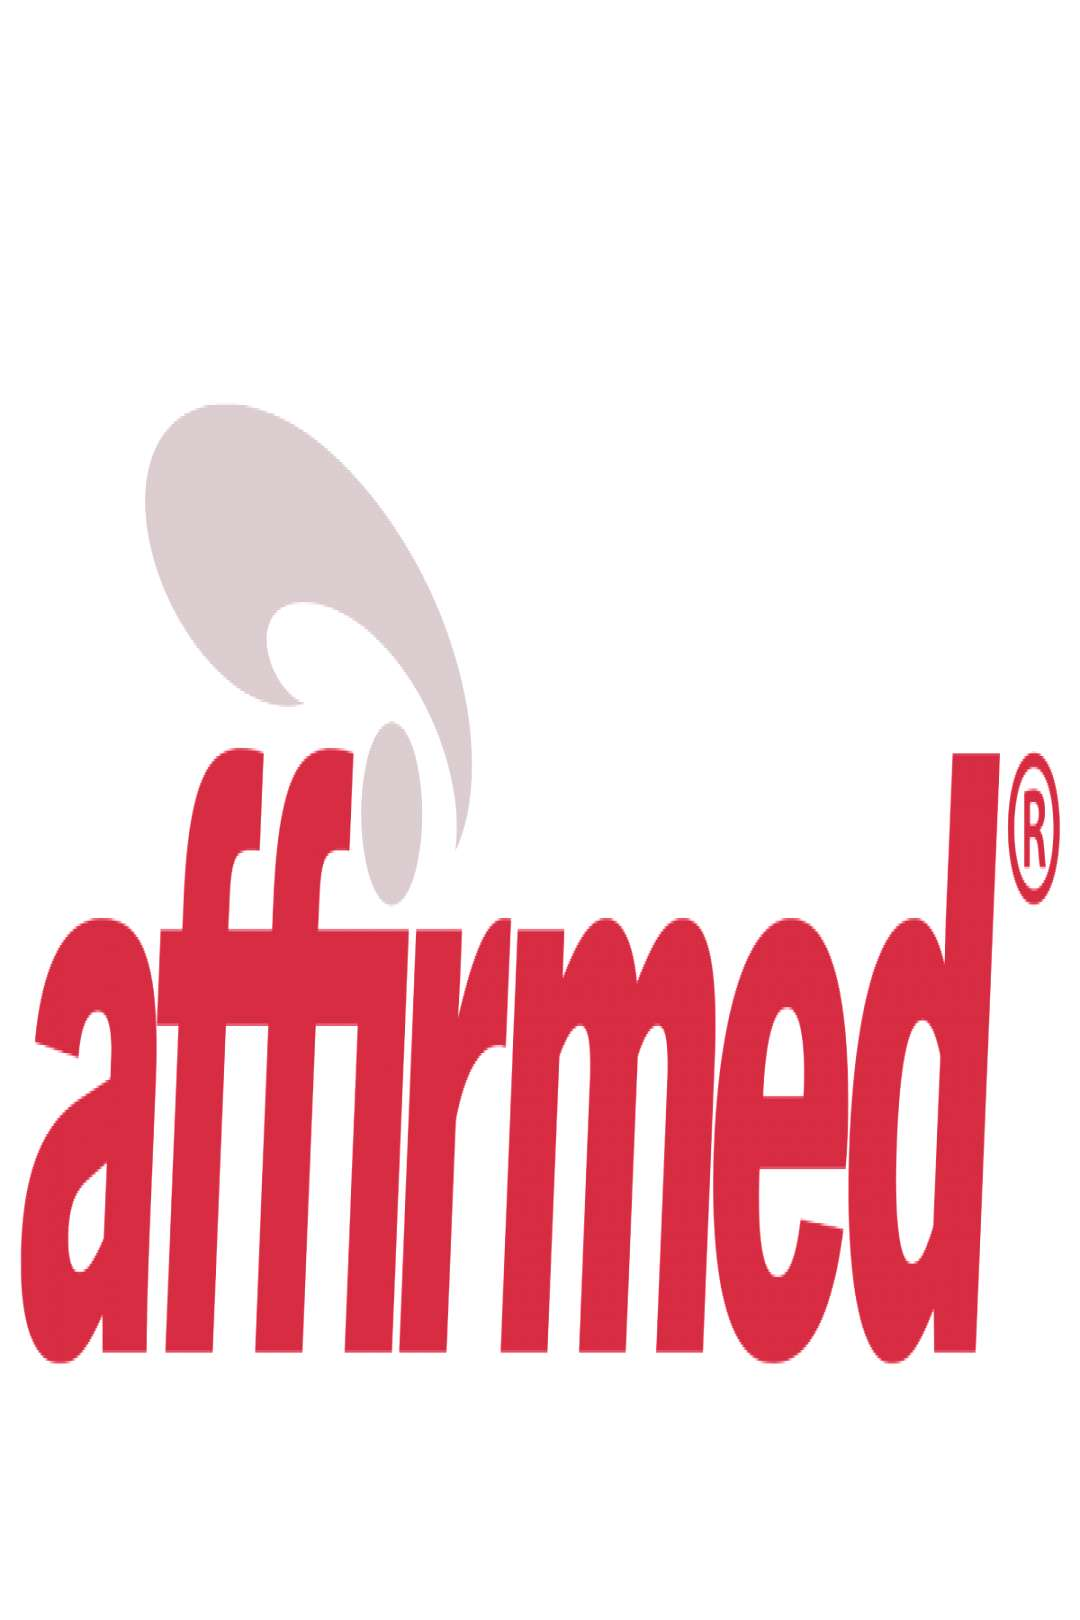 Microsoft acquires virtualized mobile network startup Affirmed Networks network solution